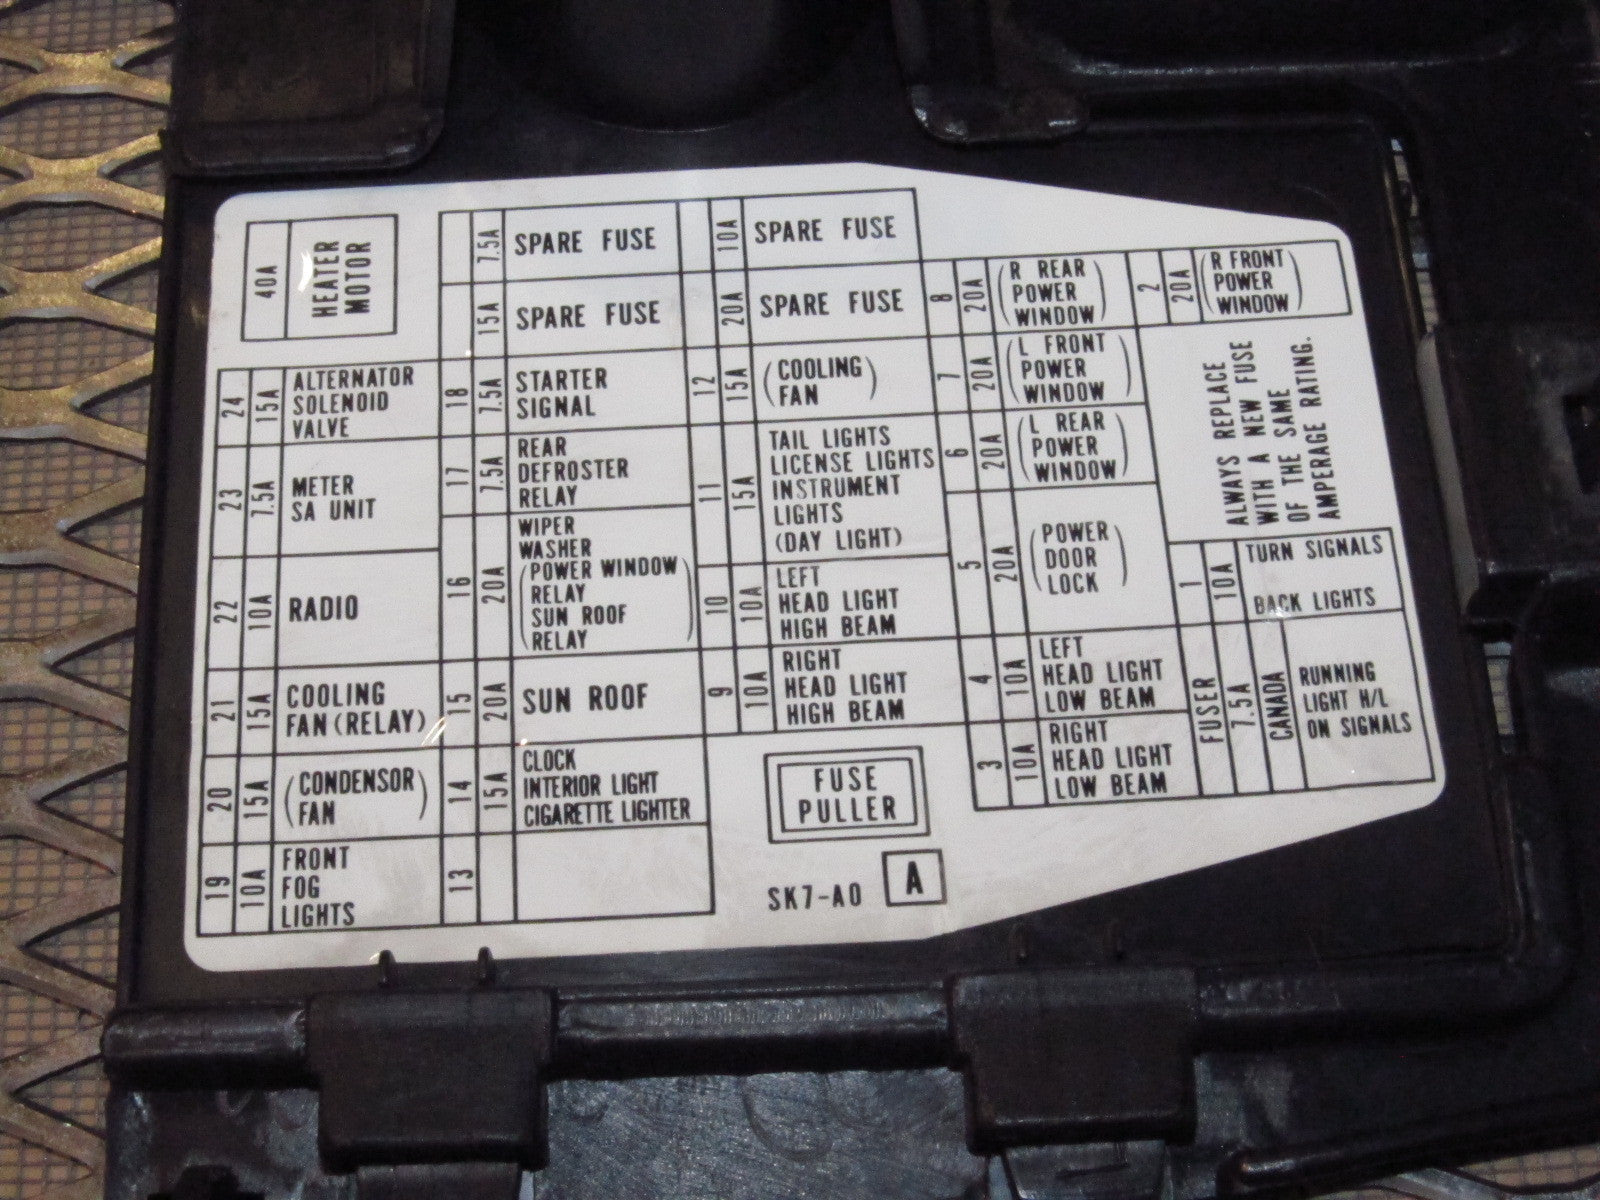 94 Integra Fuse Box | Wiring Diagram on ground box, style box, generator box, power box, meter box, tube box, the last of us box, four box, transformer box, clip box, circuit box, breaker box, case box, switch box, cover box, layout for hexagonal box, dark box, relay box, watch dogs box, junction box,